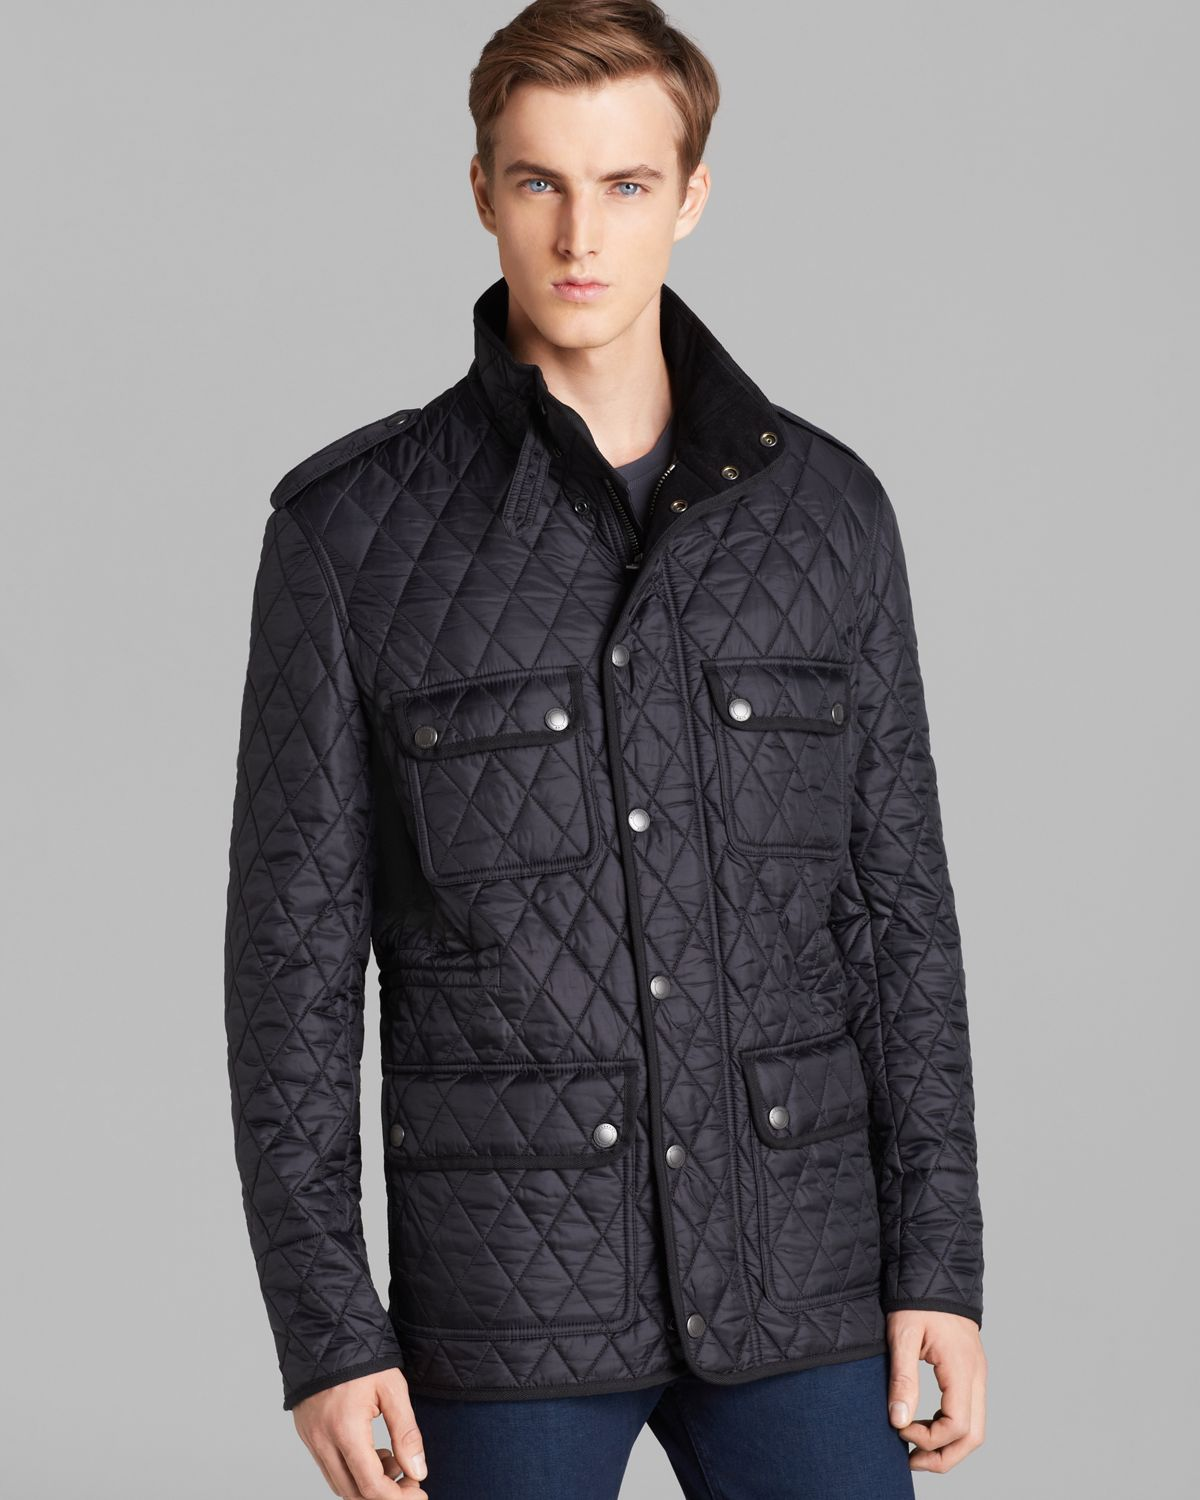 Burberry Brit Russel Diamond Quilted Jacket in Black for